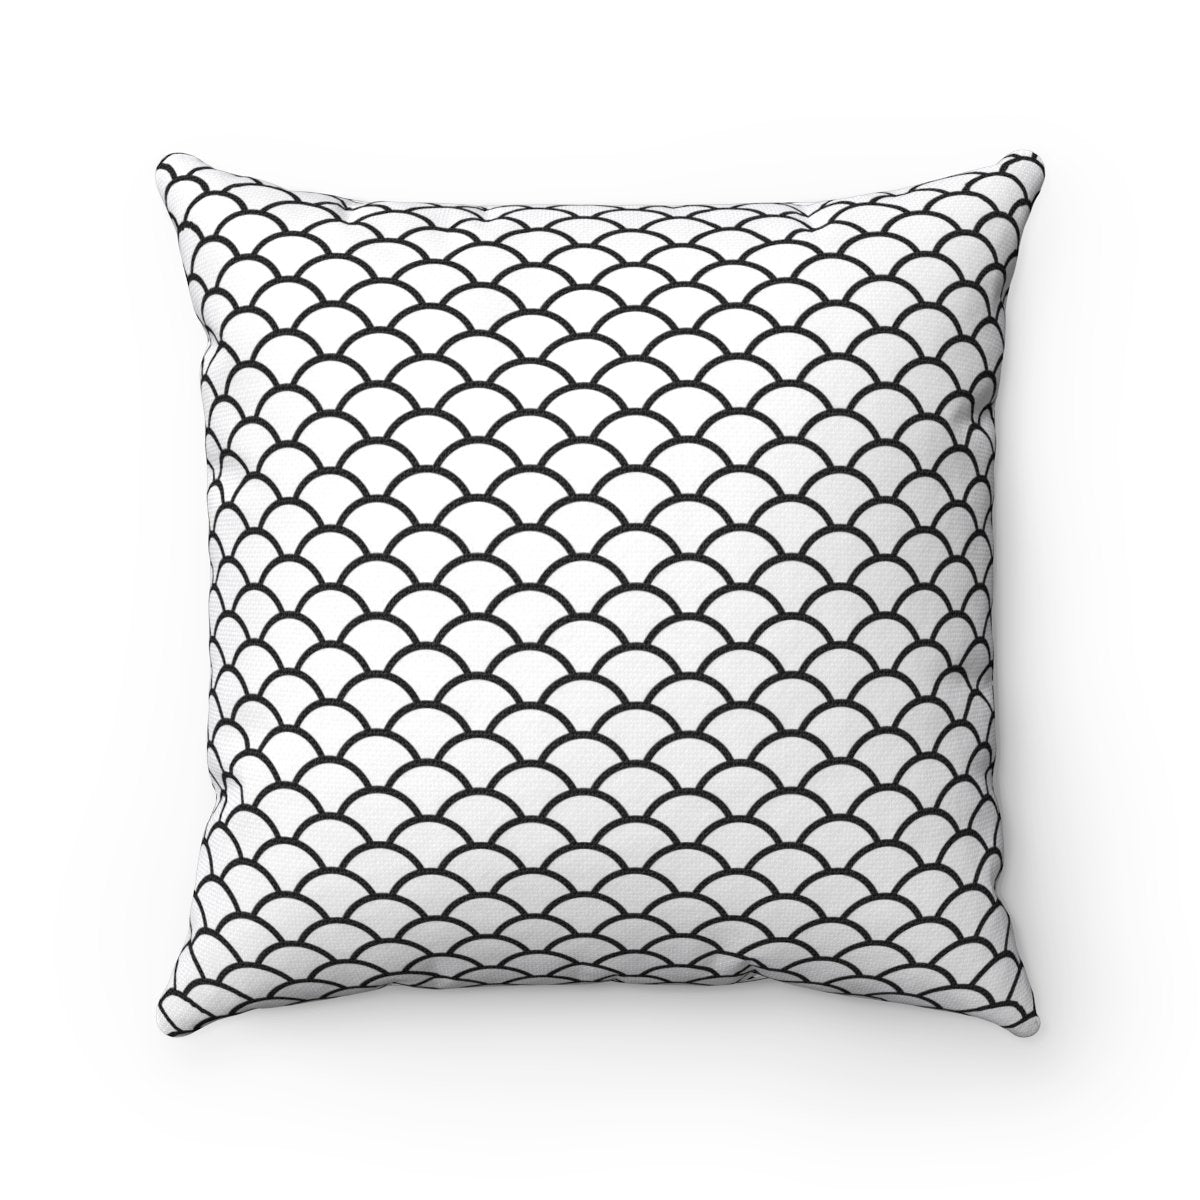 Black and white mermaid scales modern contemporary decorative cushion cover-Home Decor - Decorative Accents - Pillows & Throws - Decorative Pillows-Maison d'Elite-14x14-Très Elite